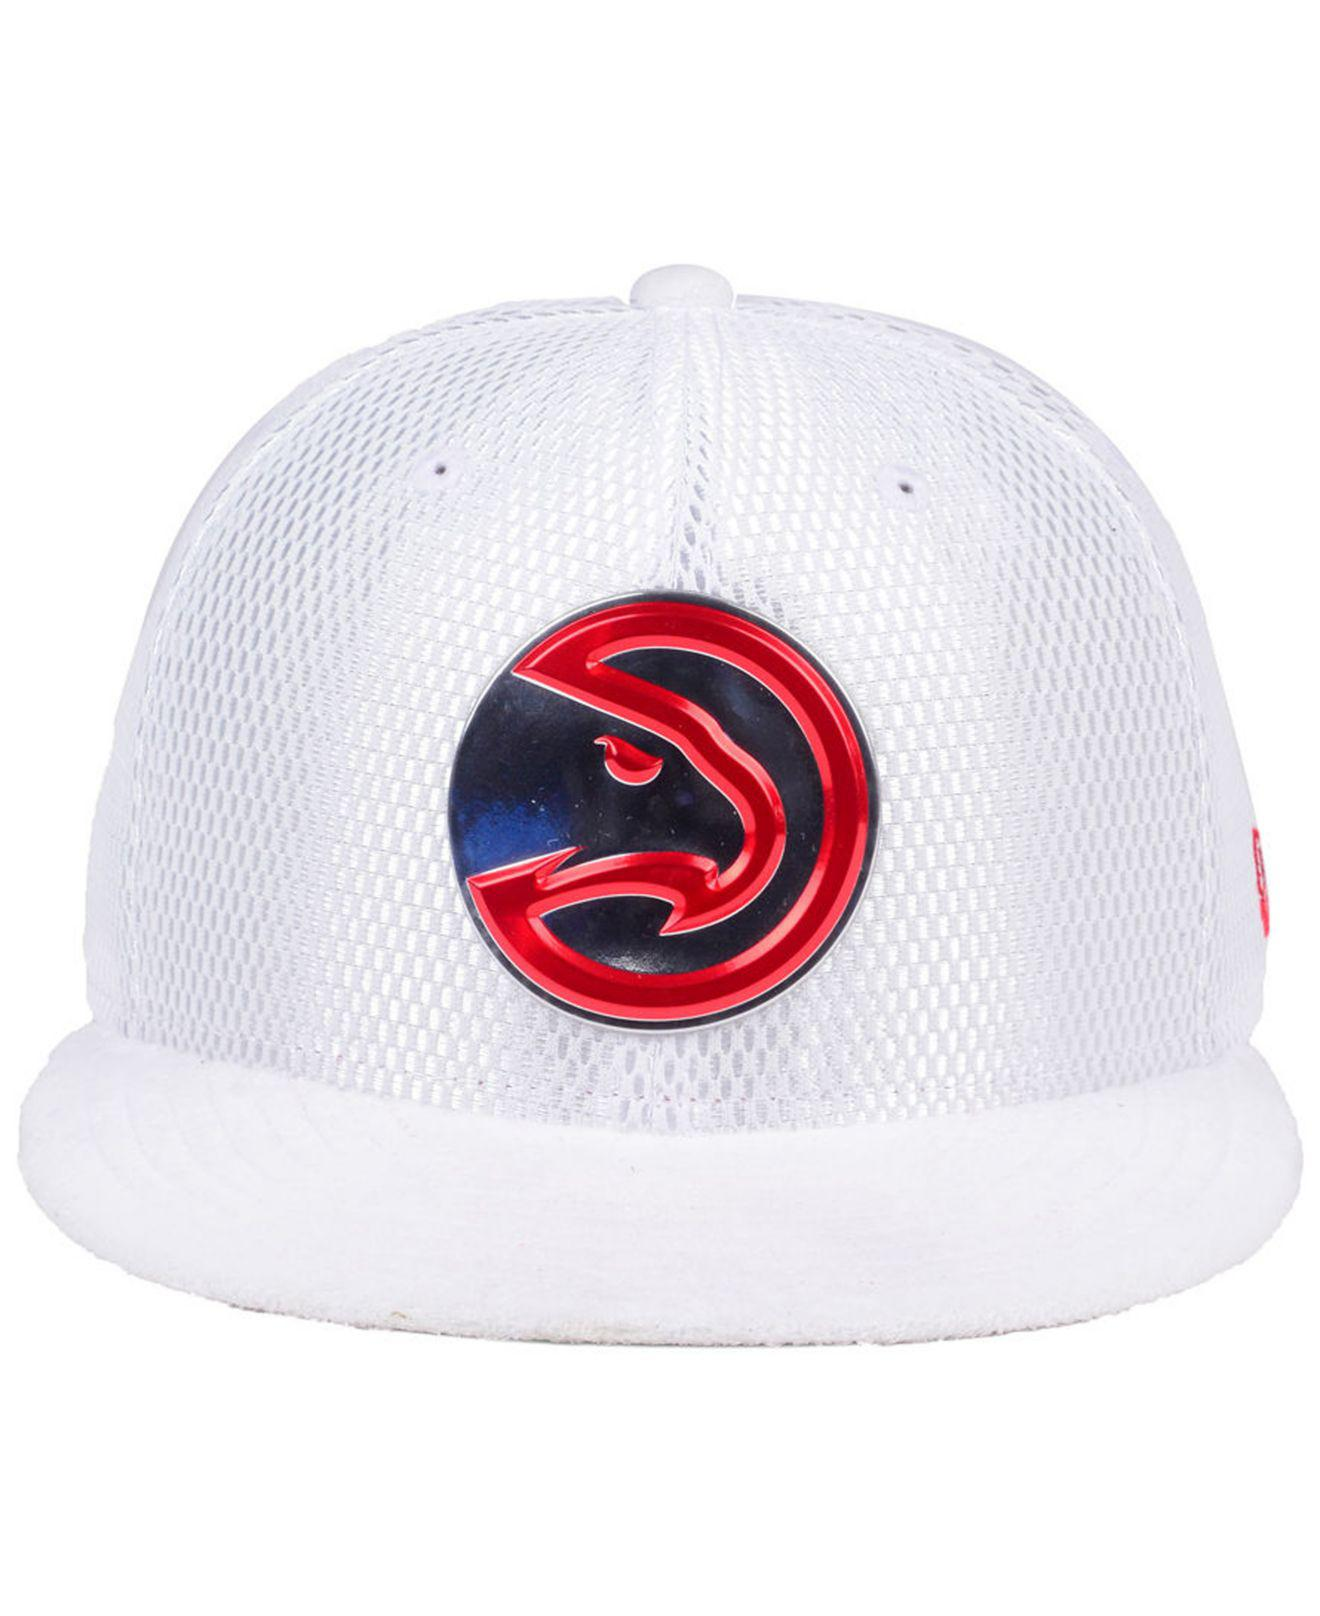 quality design 14c69 1d070 Lyst - KTZ Atlanta Hawks On-court Collection Draft 59fifty Fitted Cap in  White for Men